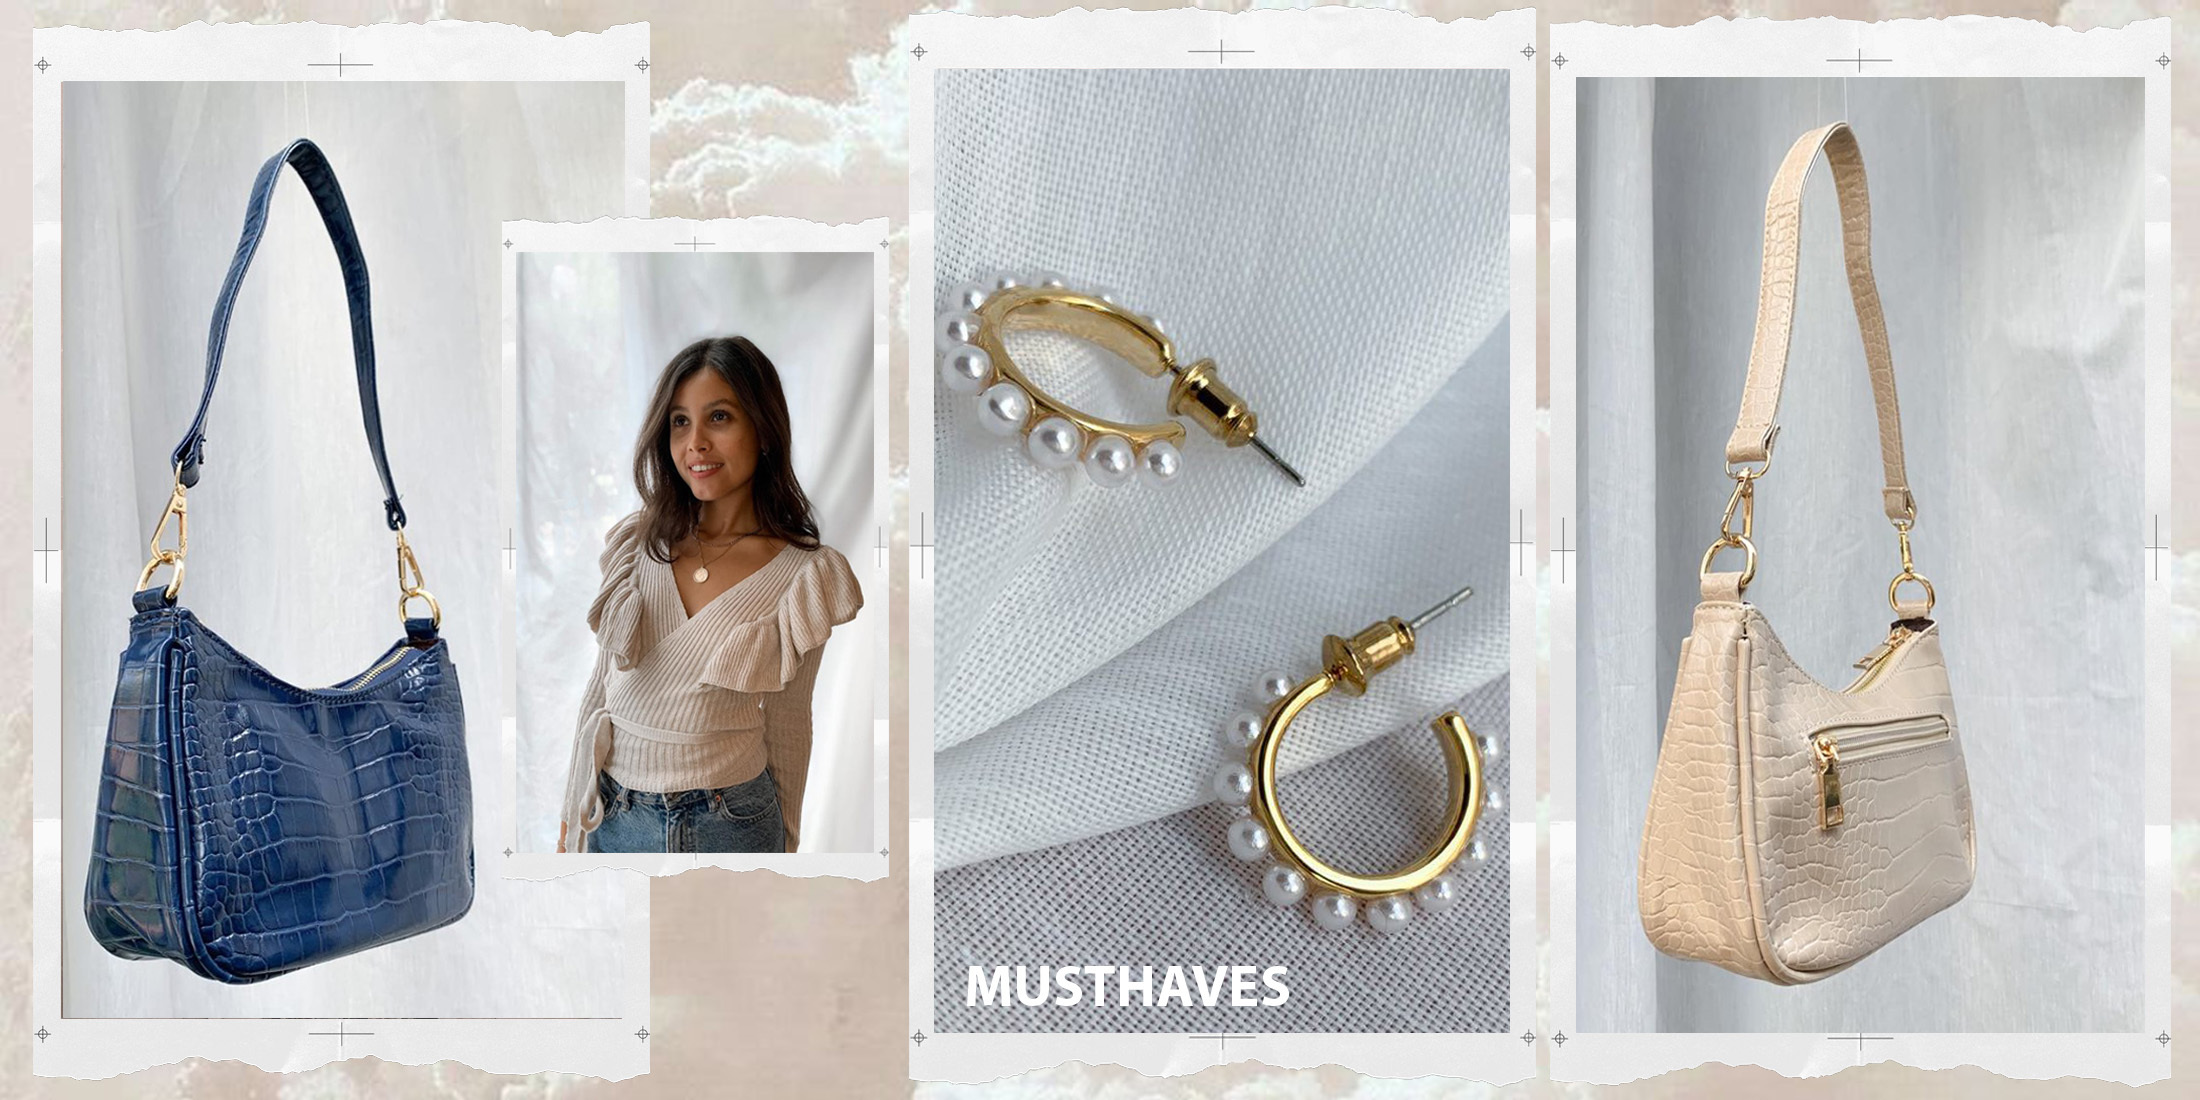 musthaves